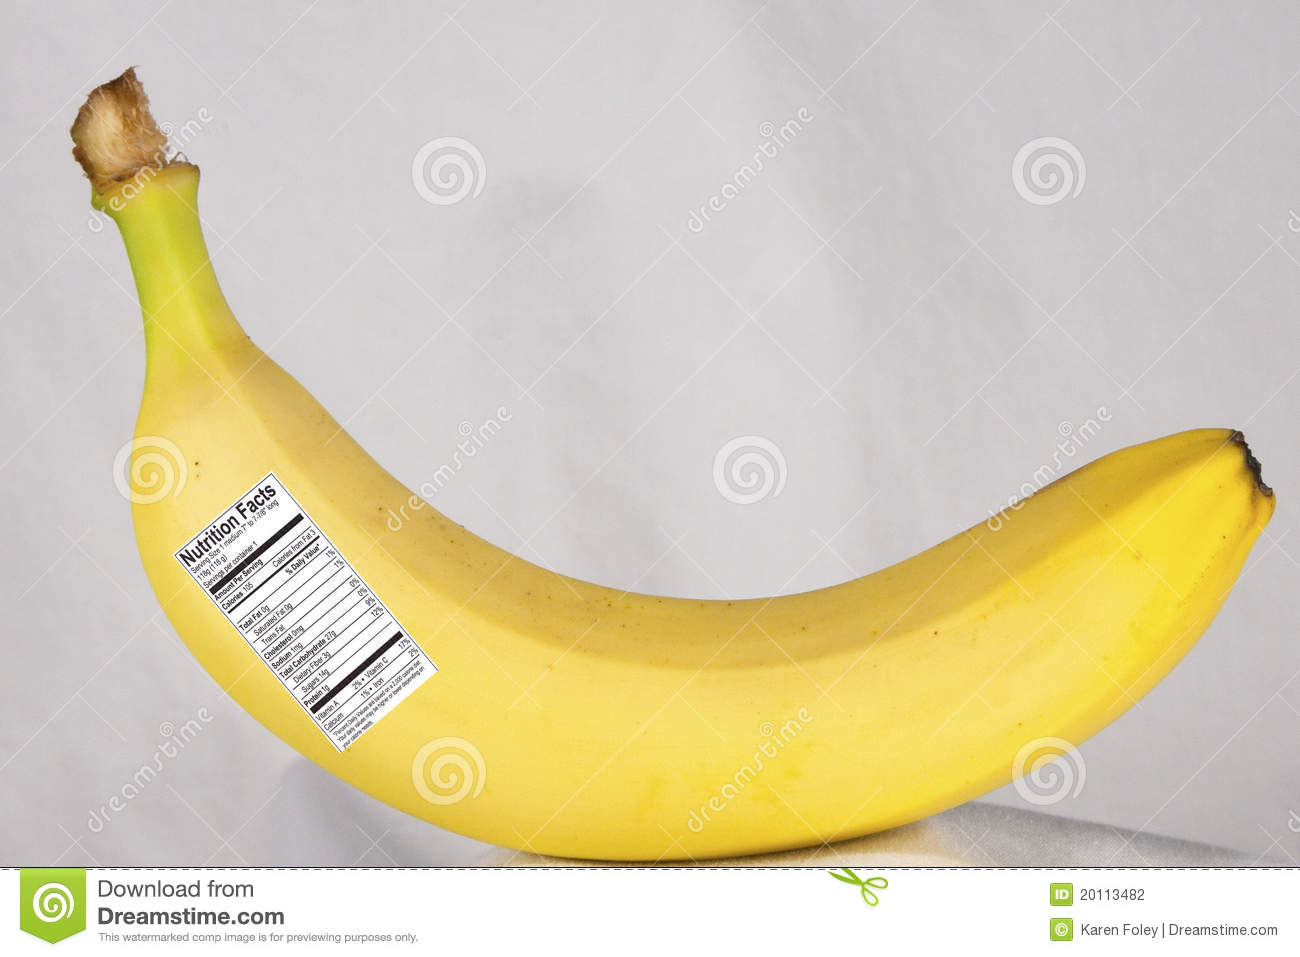 banana with nutrition label stock photo - image of percent